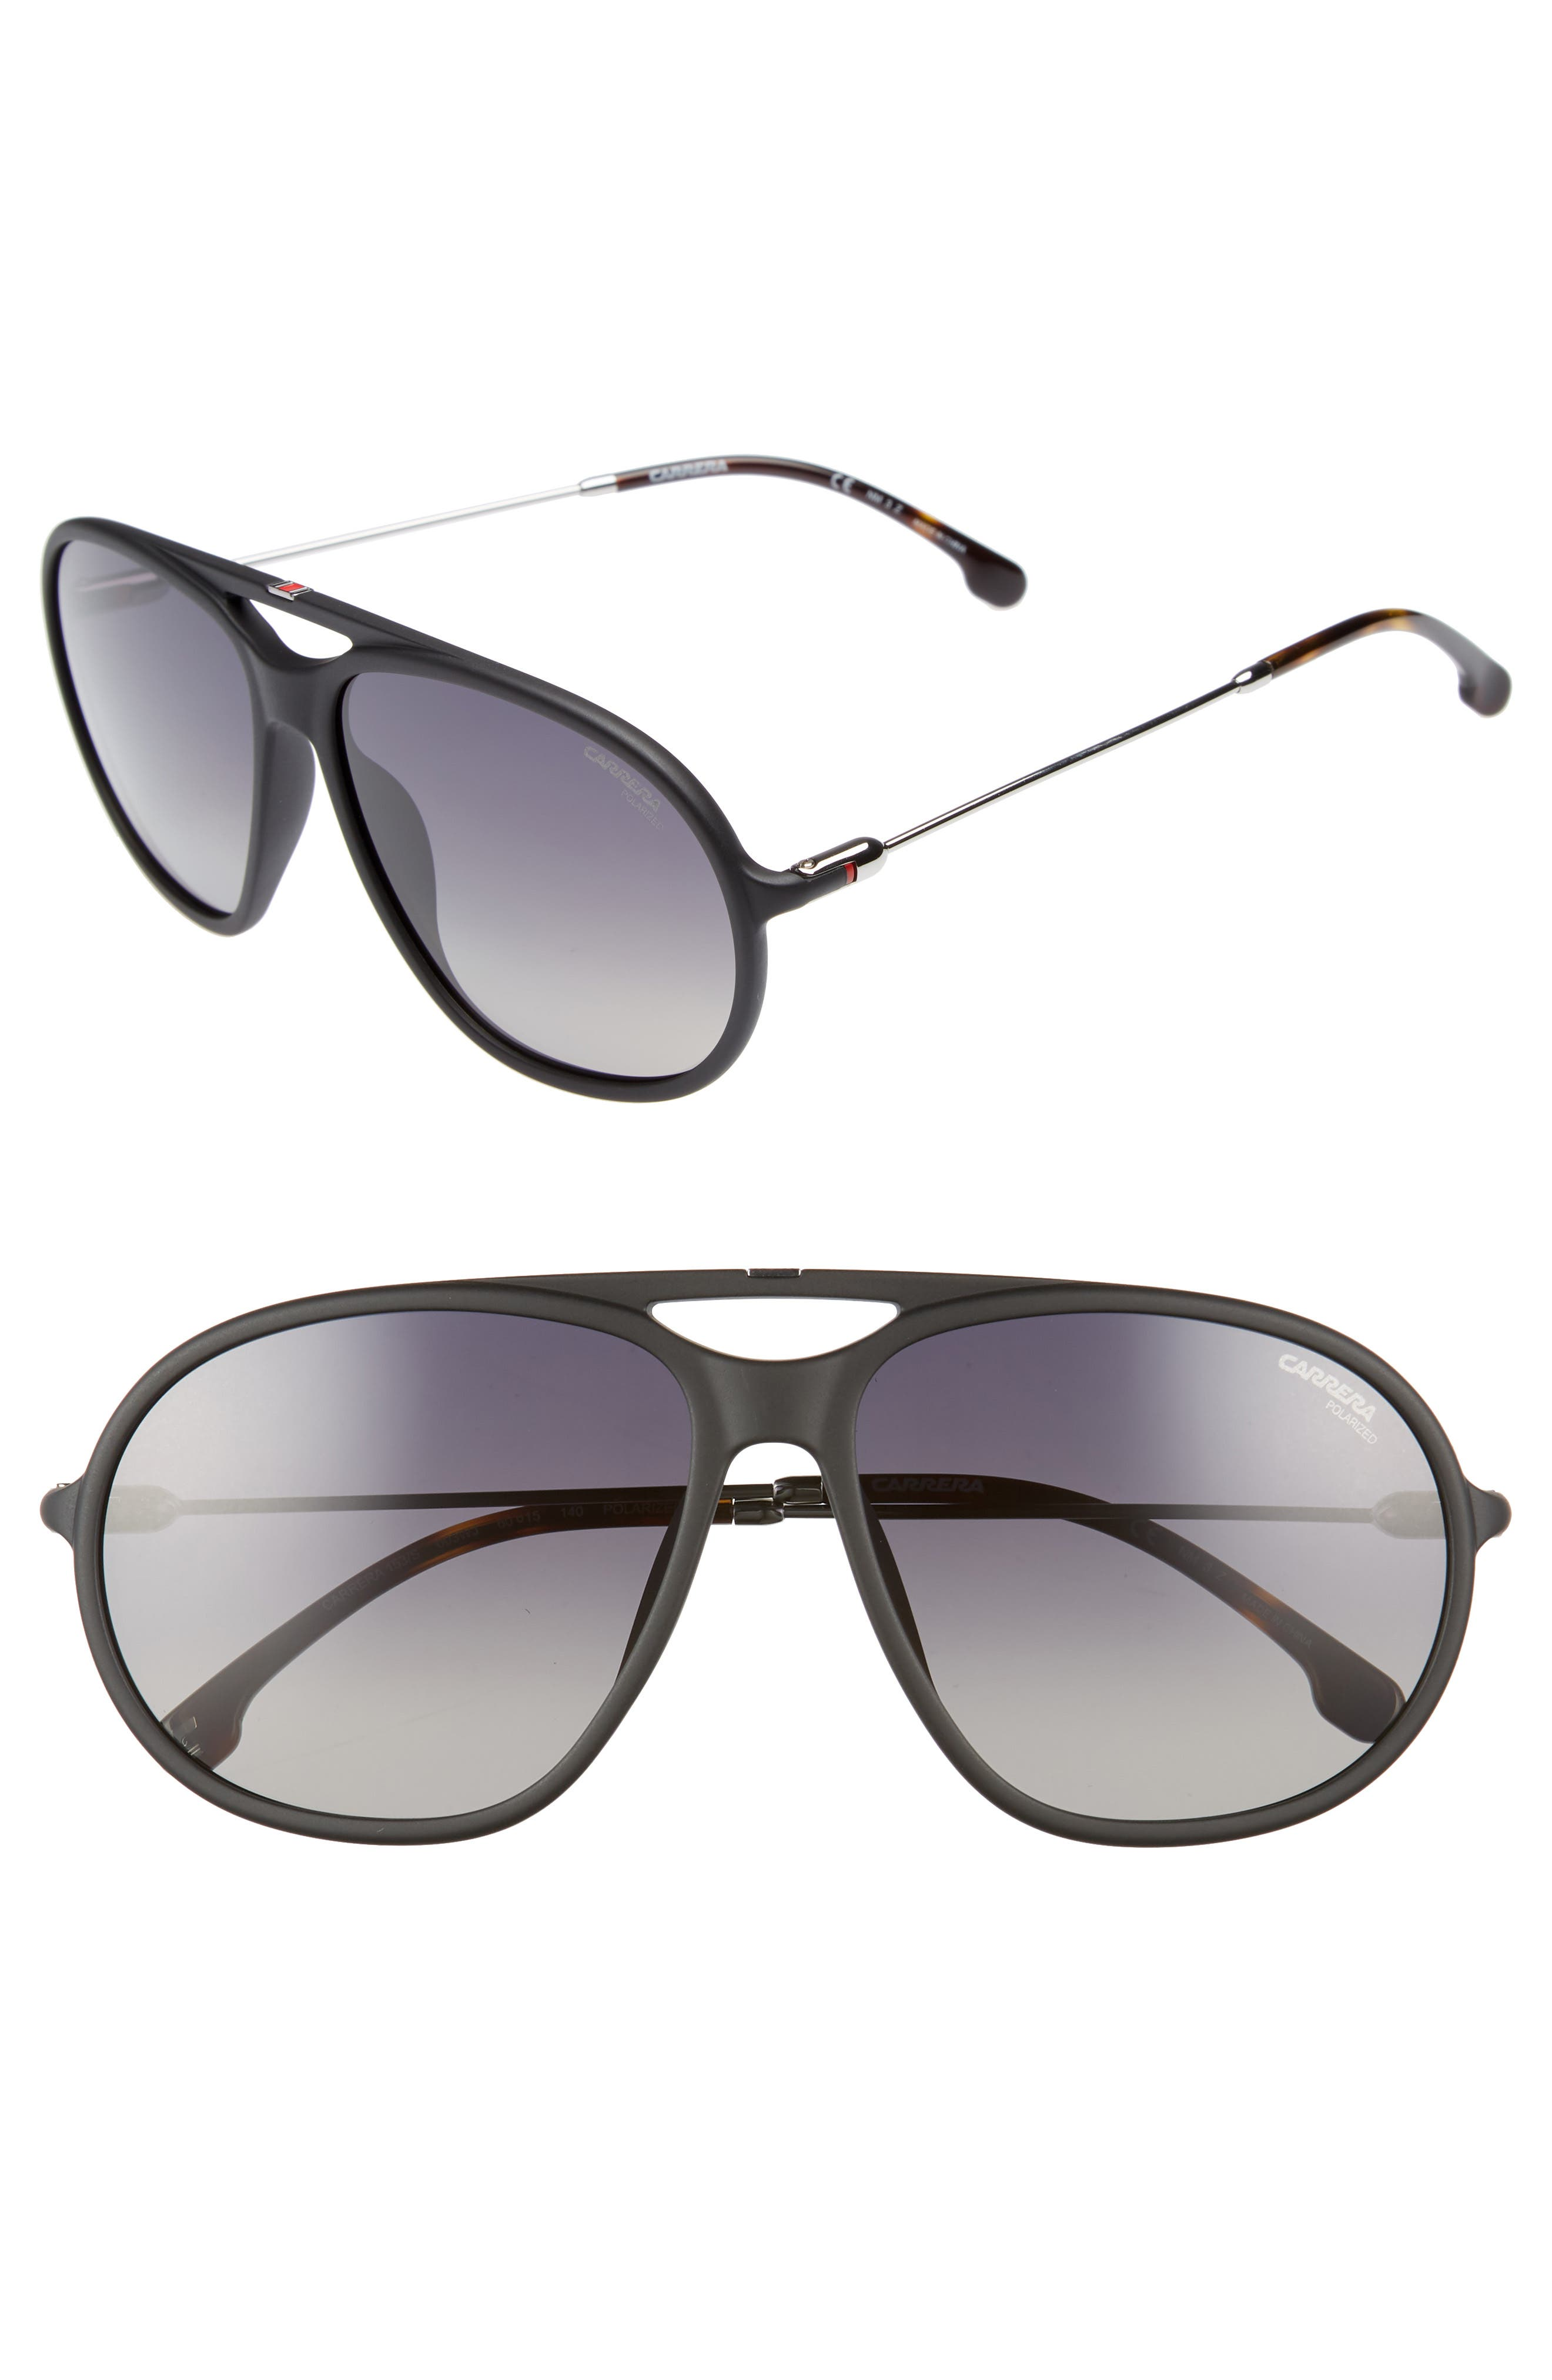 60mm Polarized Aviator Sunglasses,                         Main,                         color,